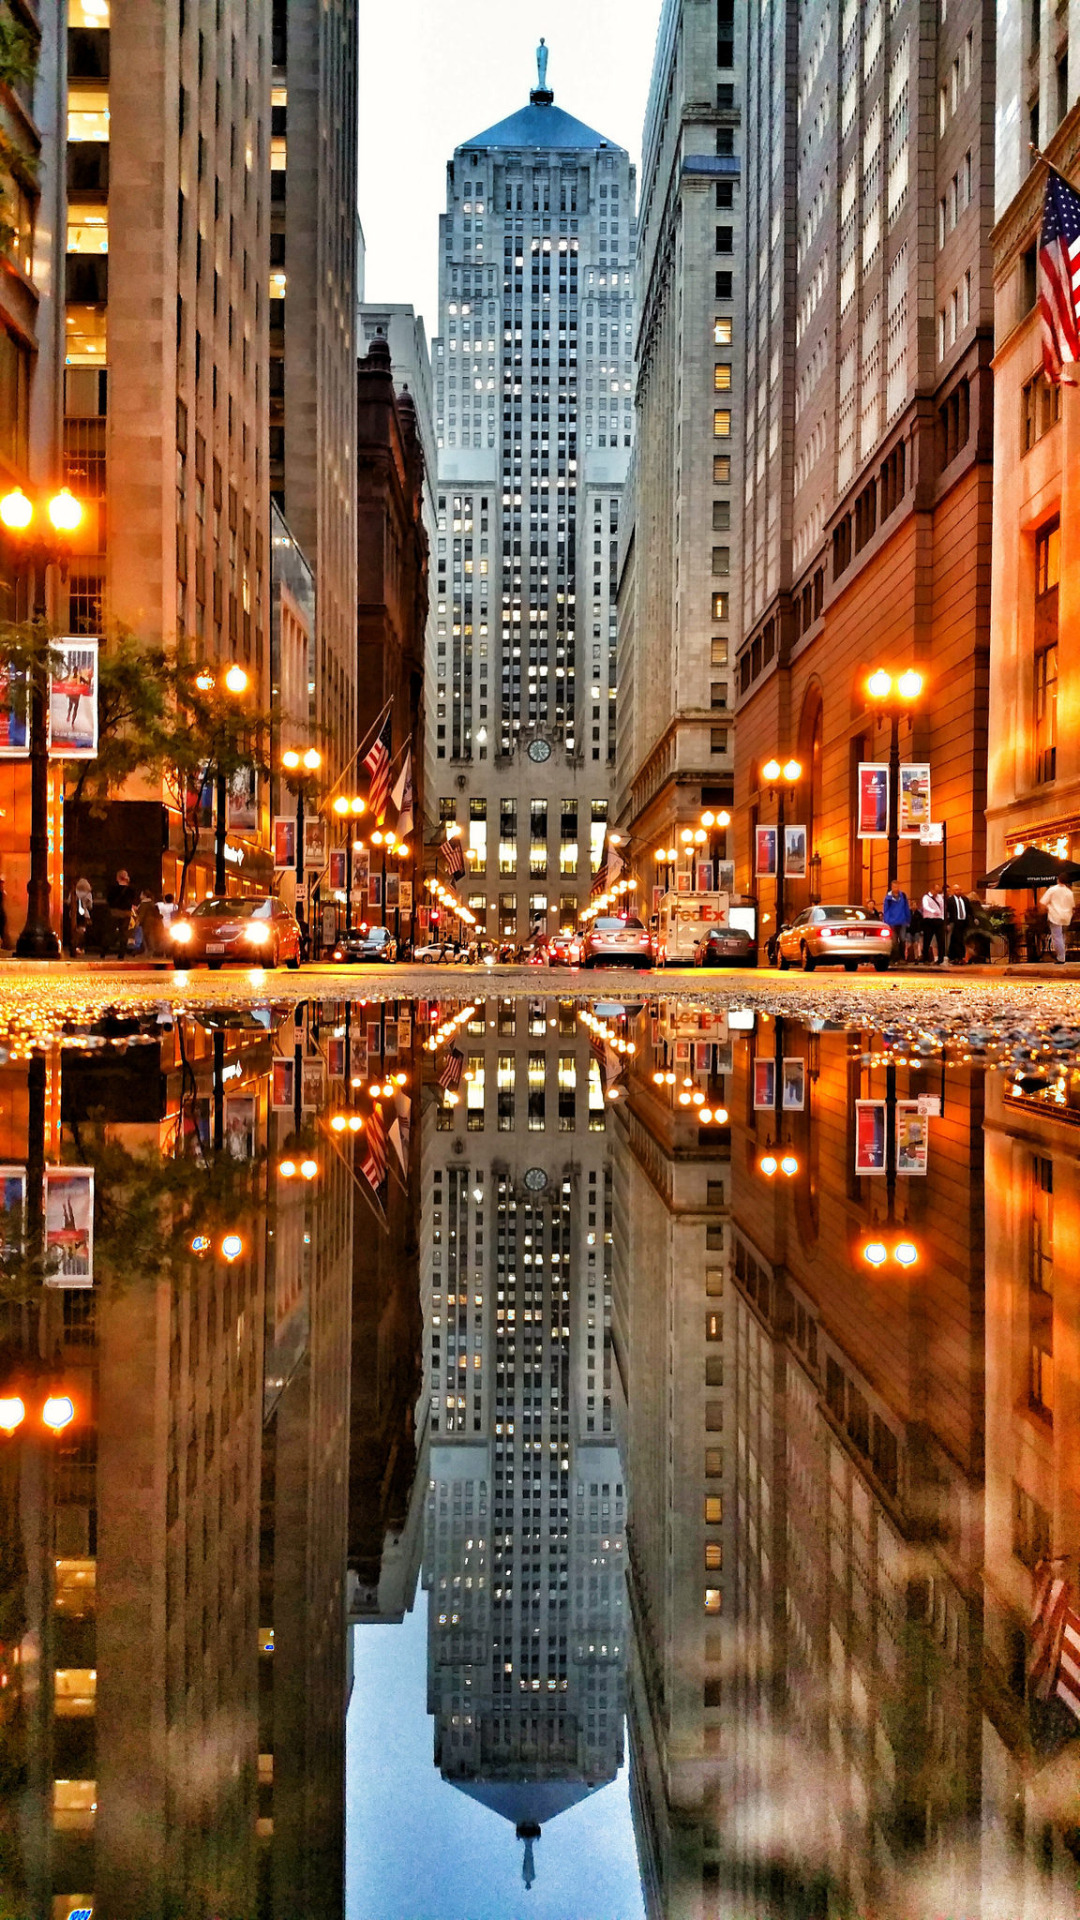 chicago usa city architecture urban travel business street building lights skyscraper reflection traffic